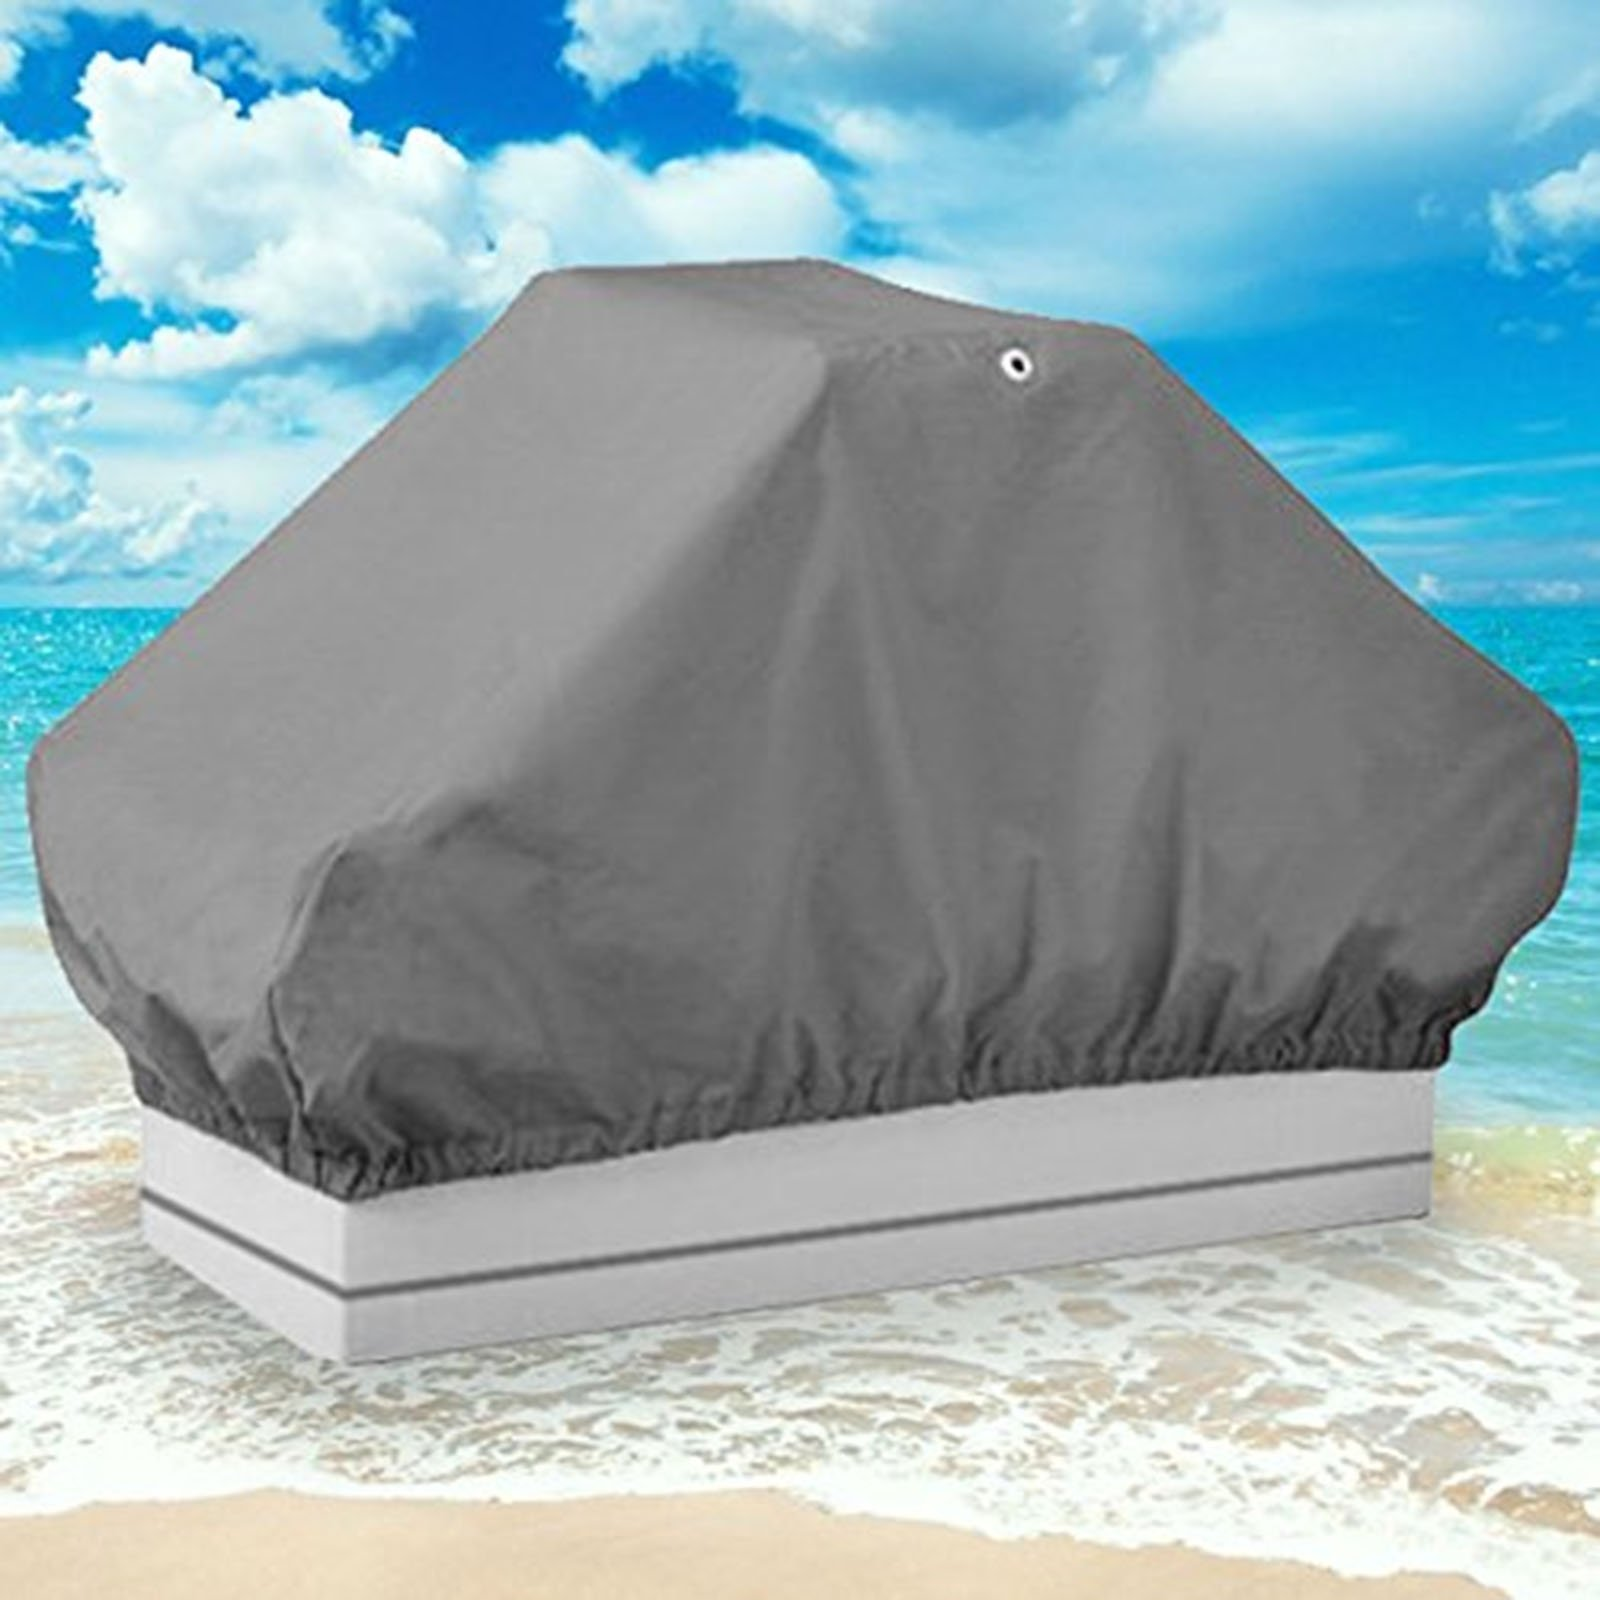 North East Harbor NEH Boat Seat Cover Back to Back Double Seat Storage Cover - 50'' L x 22'' W x 22'' H - Gray Heavy Duty Water, Mildew, and UV Resistant Thick Polyester Fabric